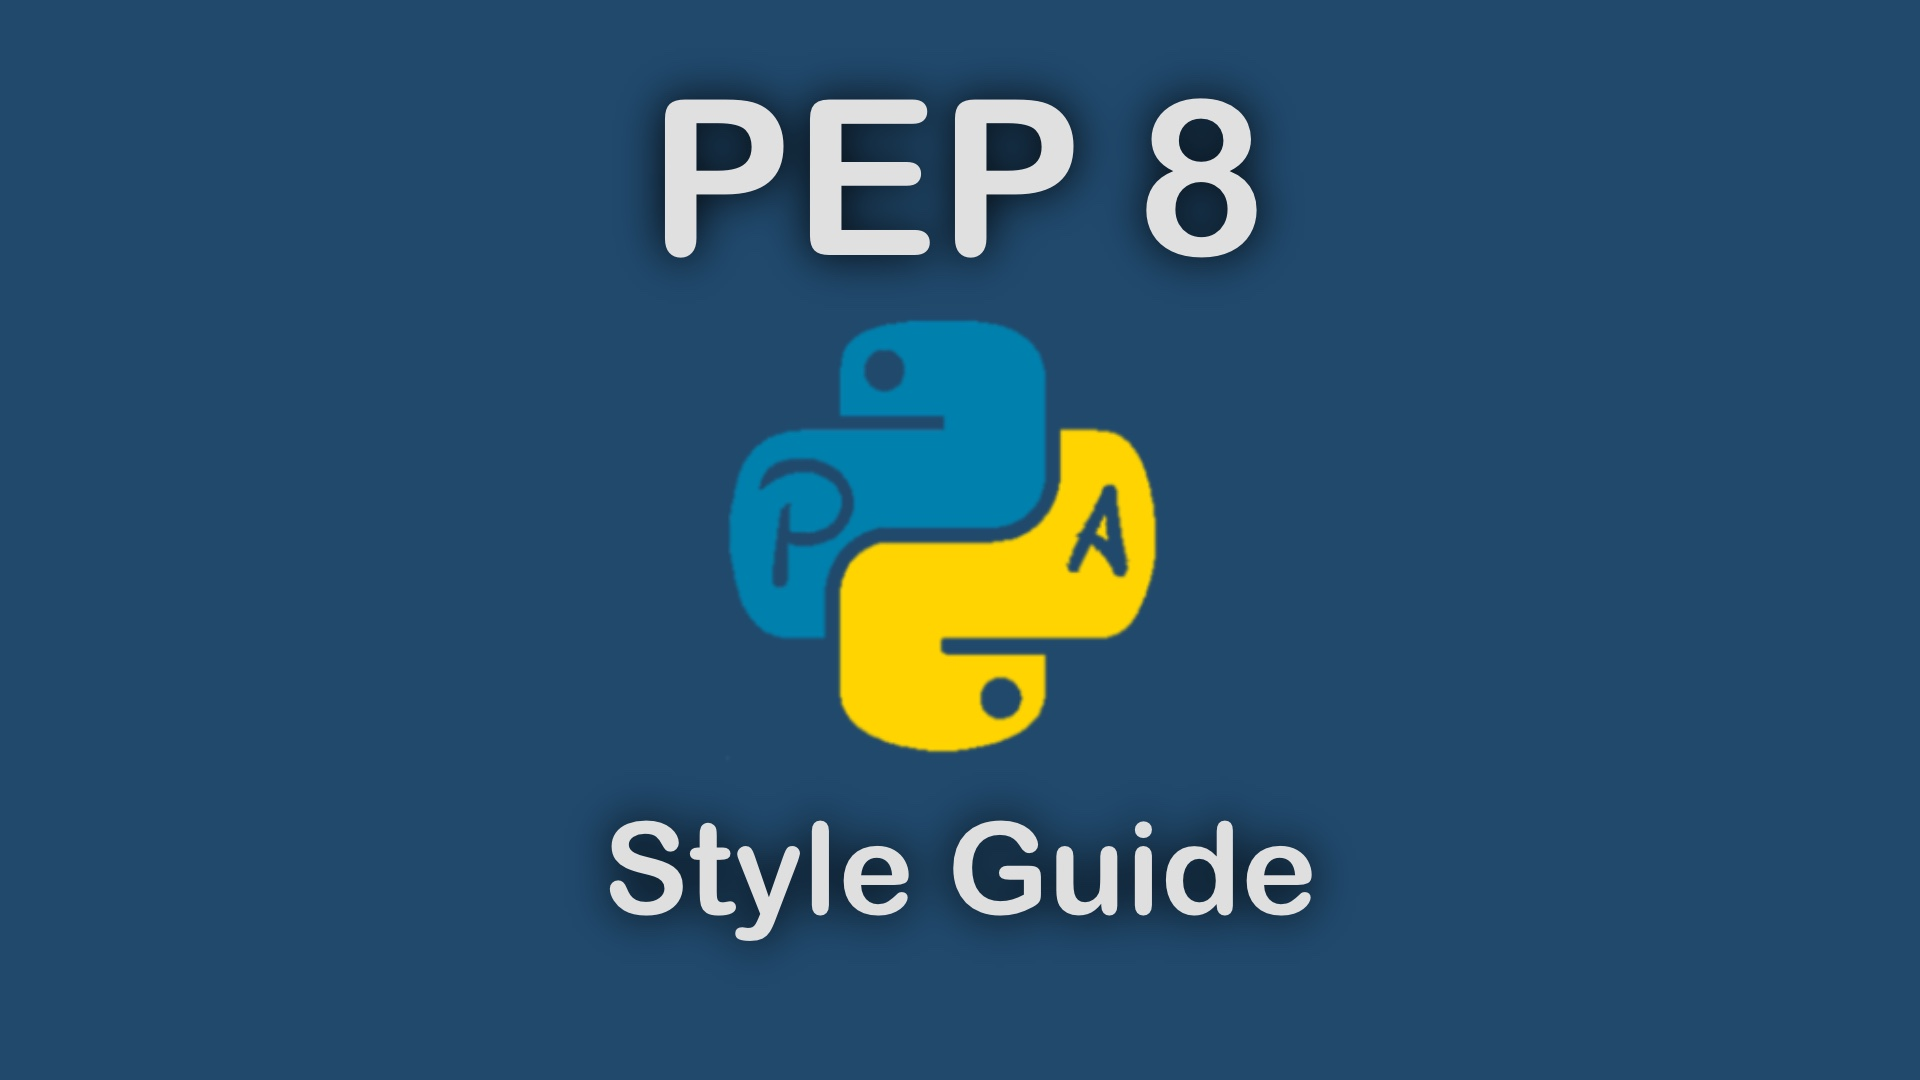 PEP 8 Style Guide of Python